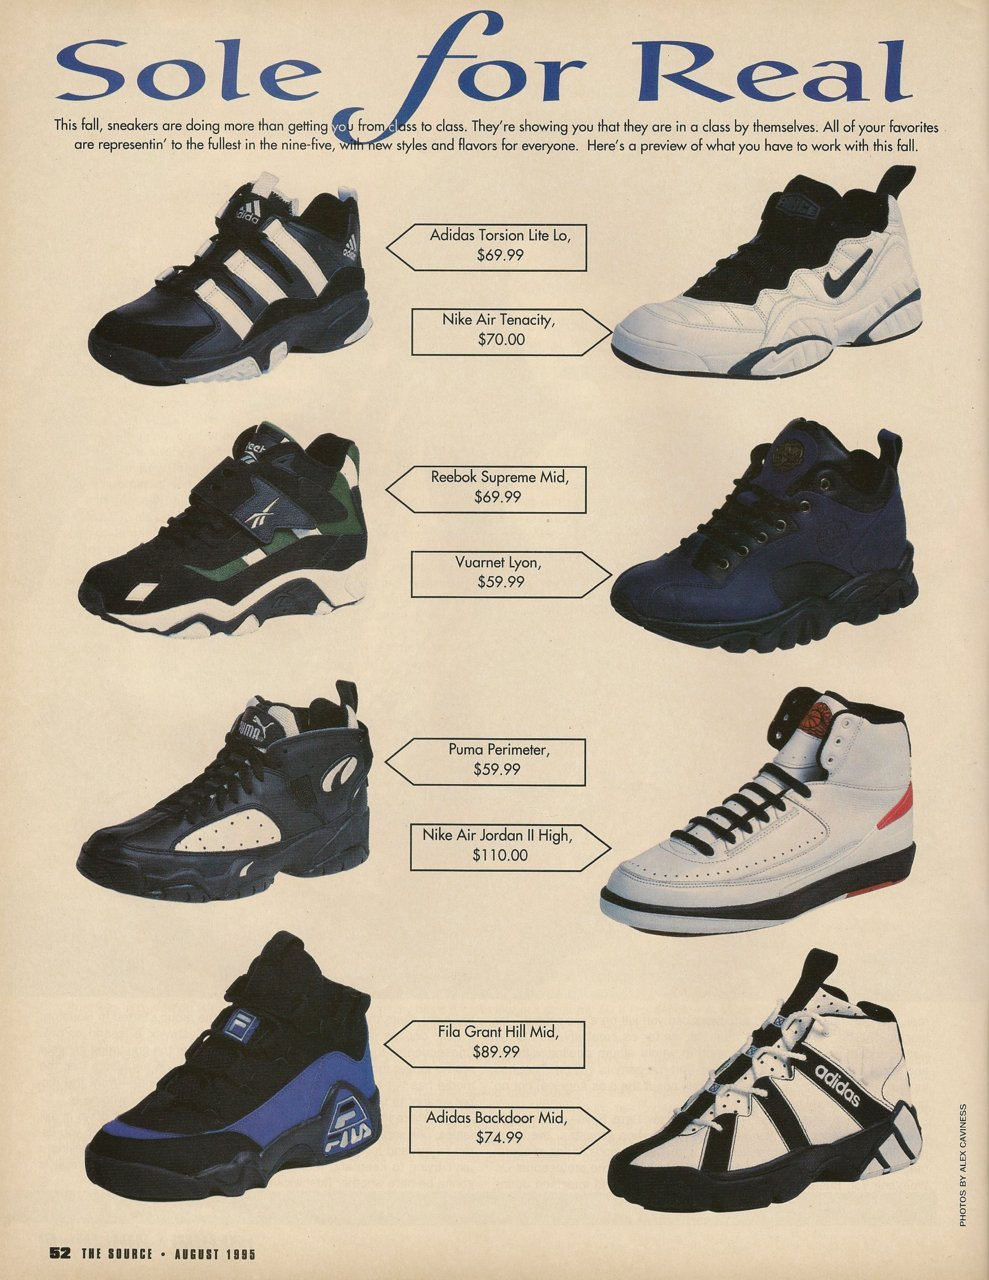 The Source Magazine Sole For Real.jpg